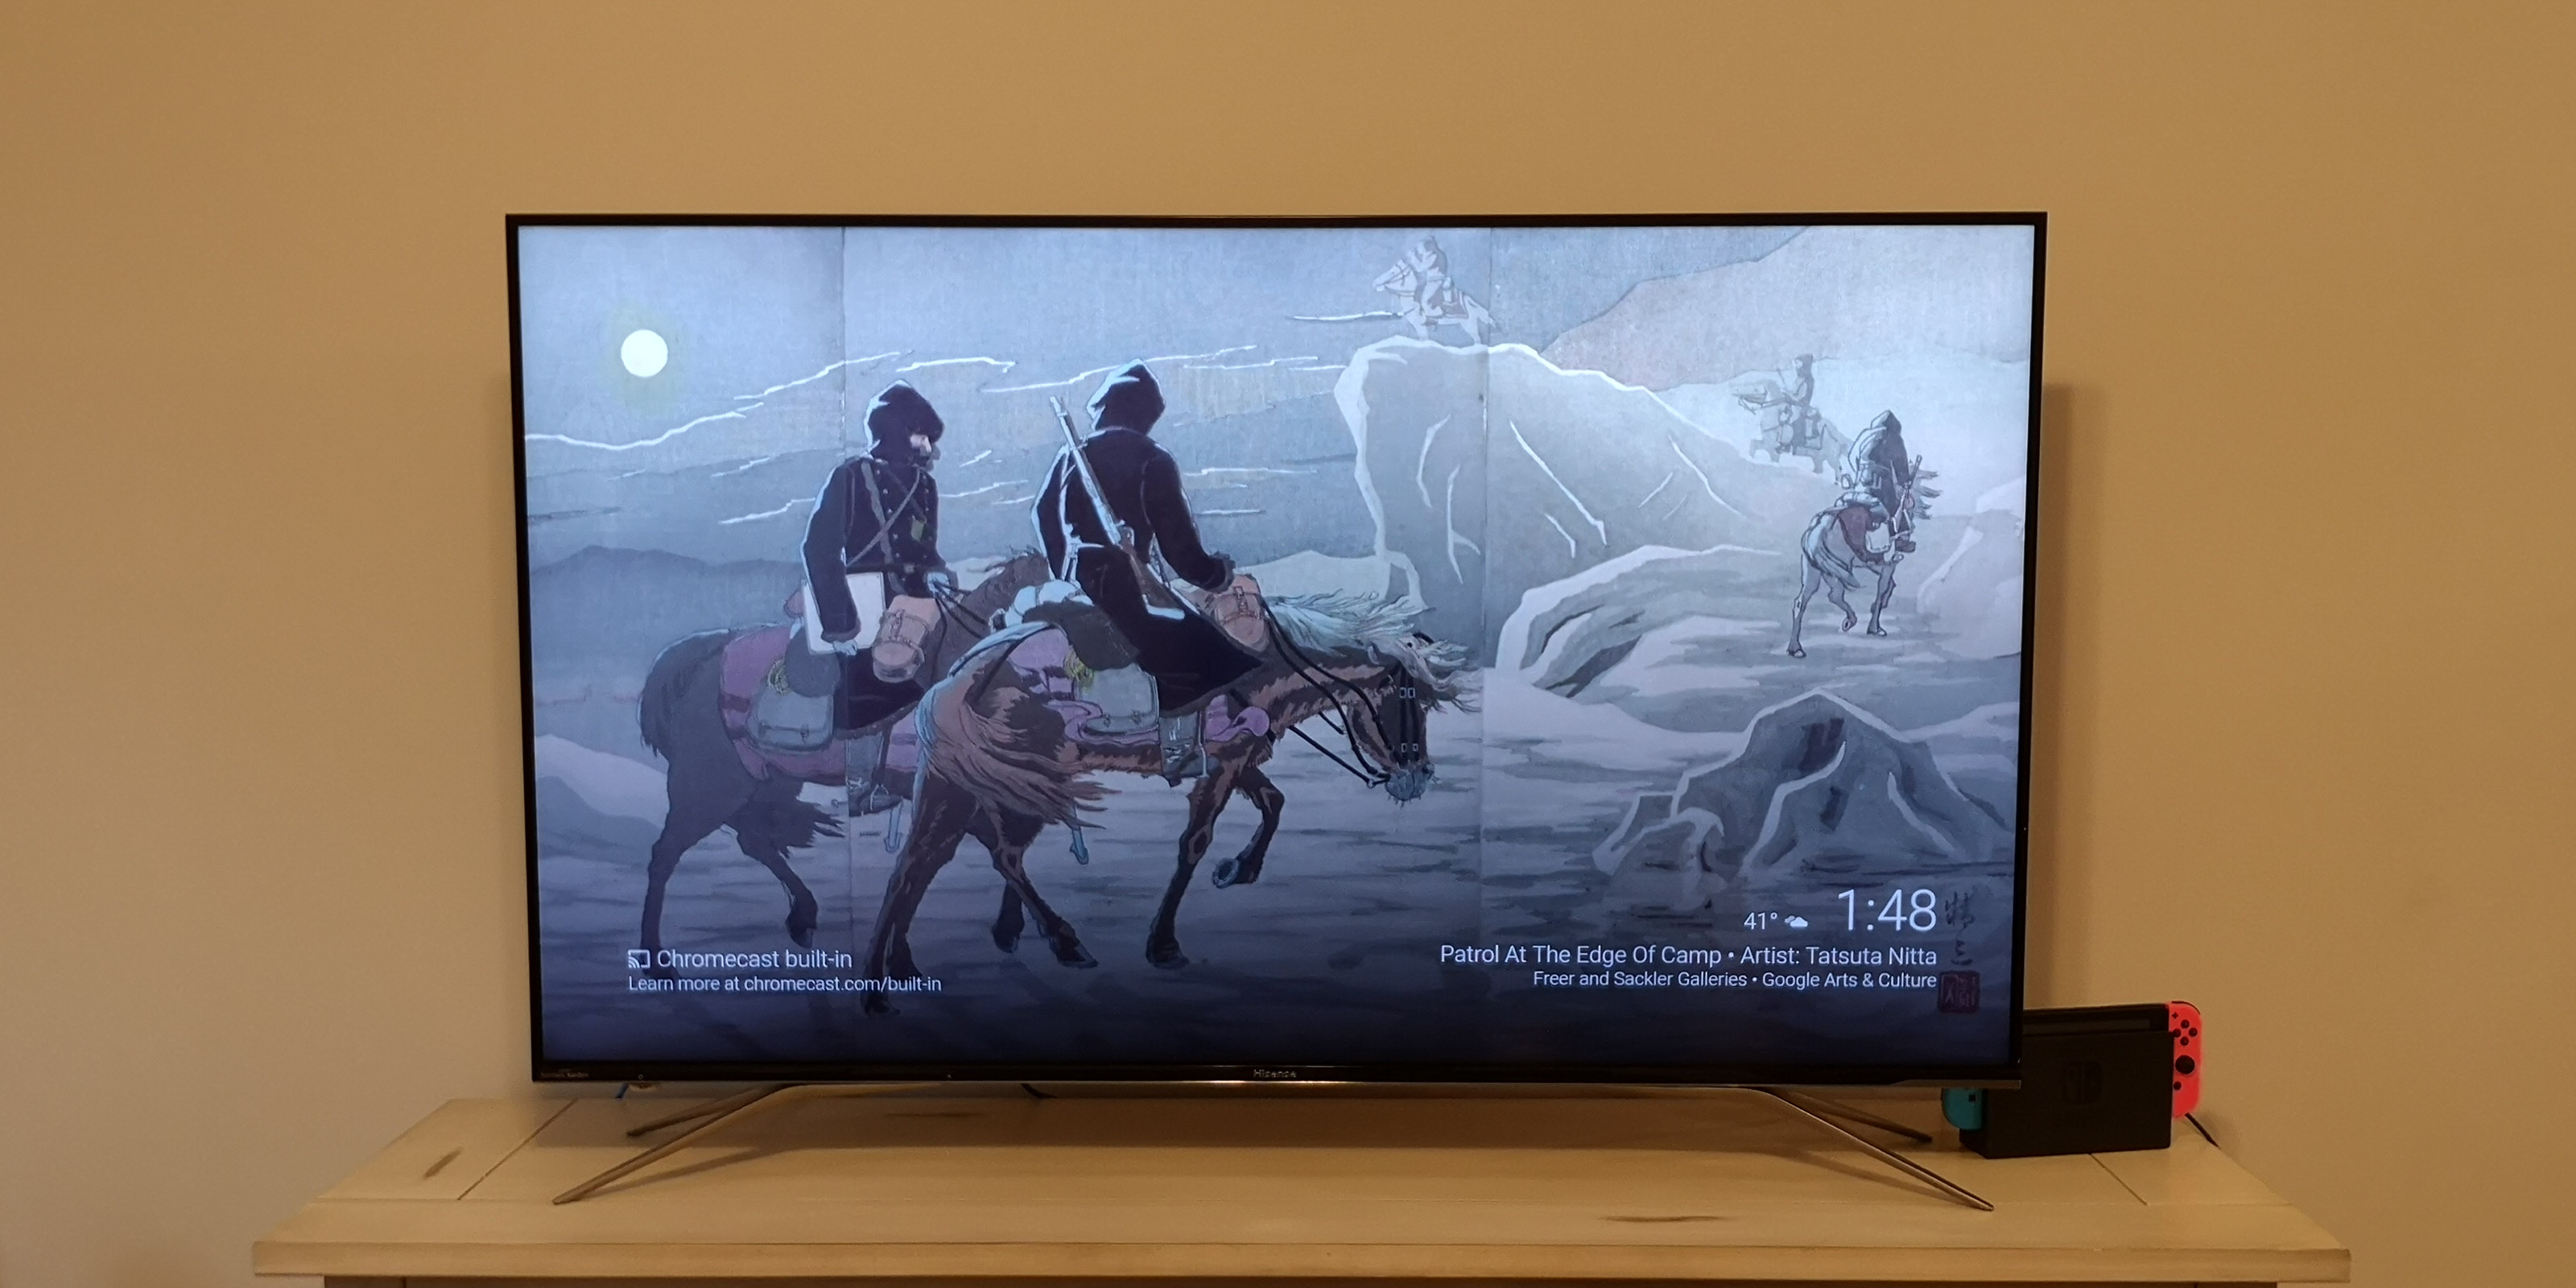 HiSense H9E Plus Review: A great Android TV offering - 9to5Google